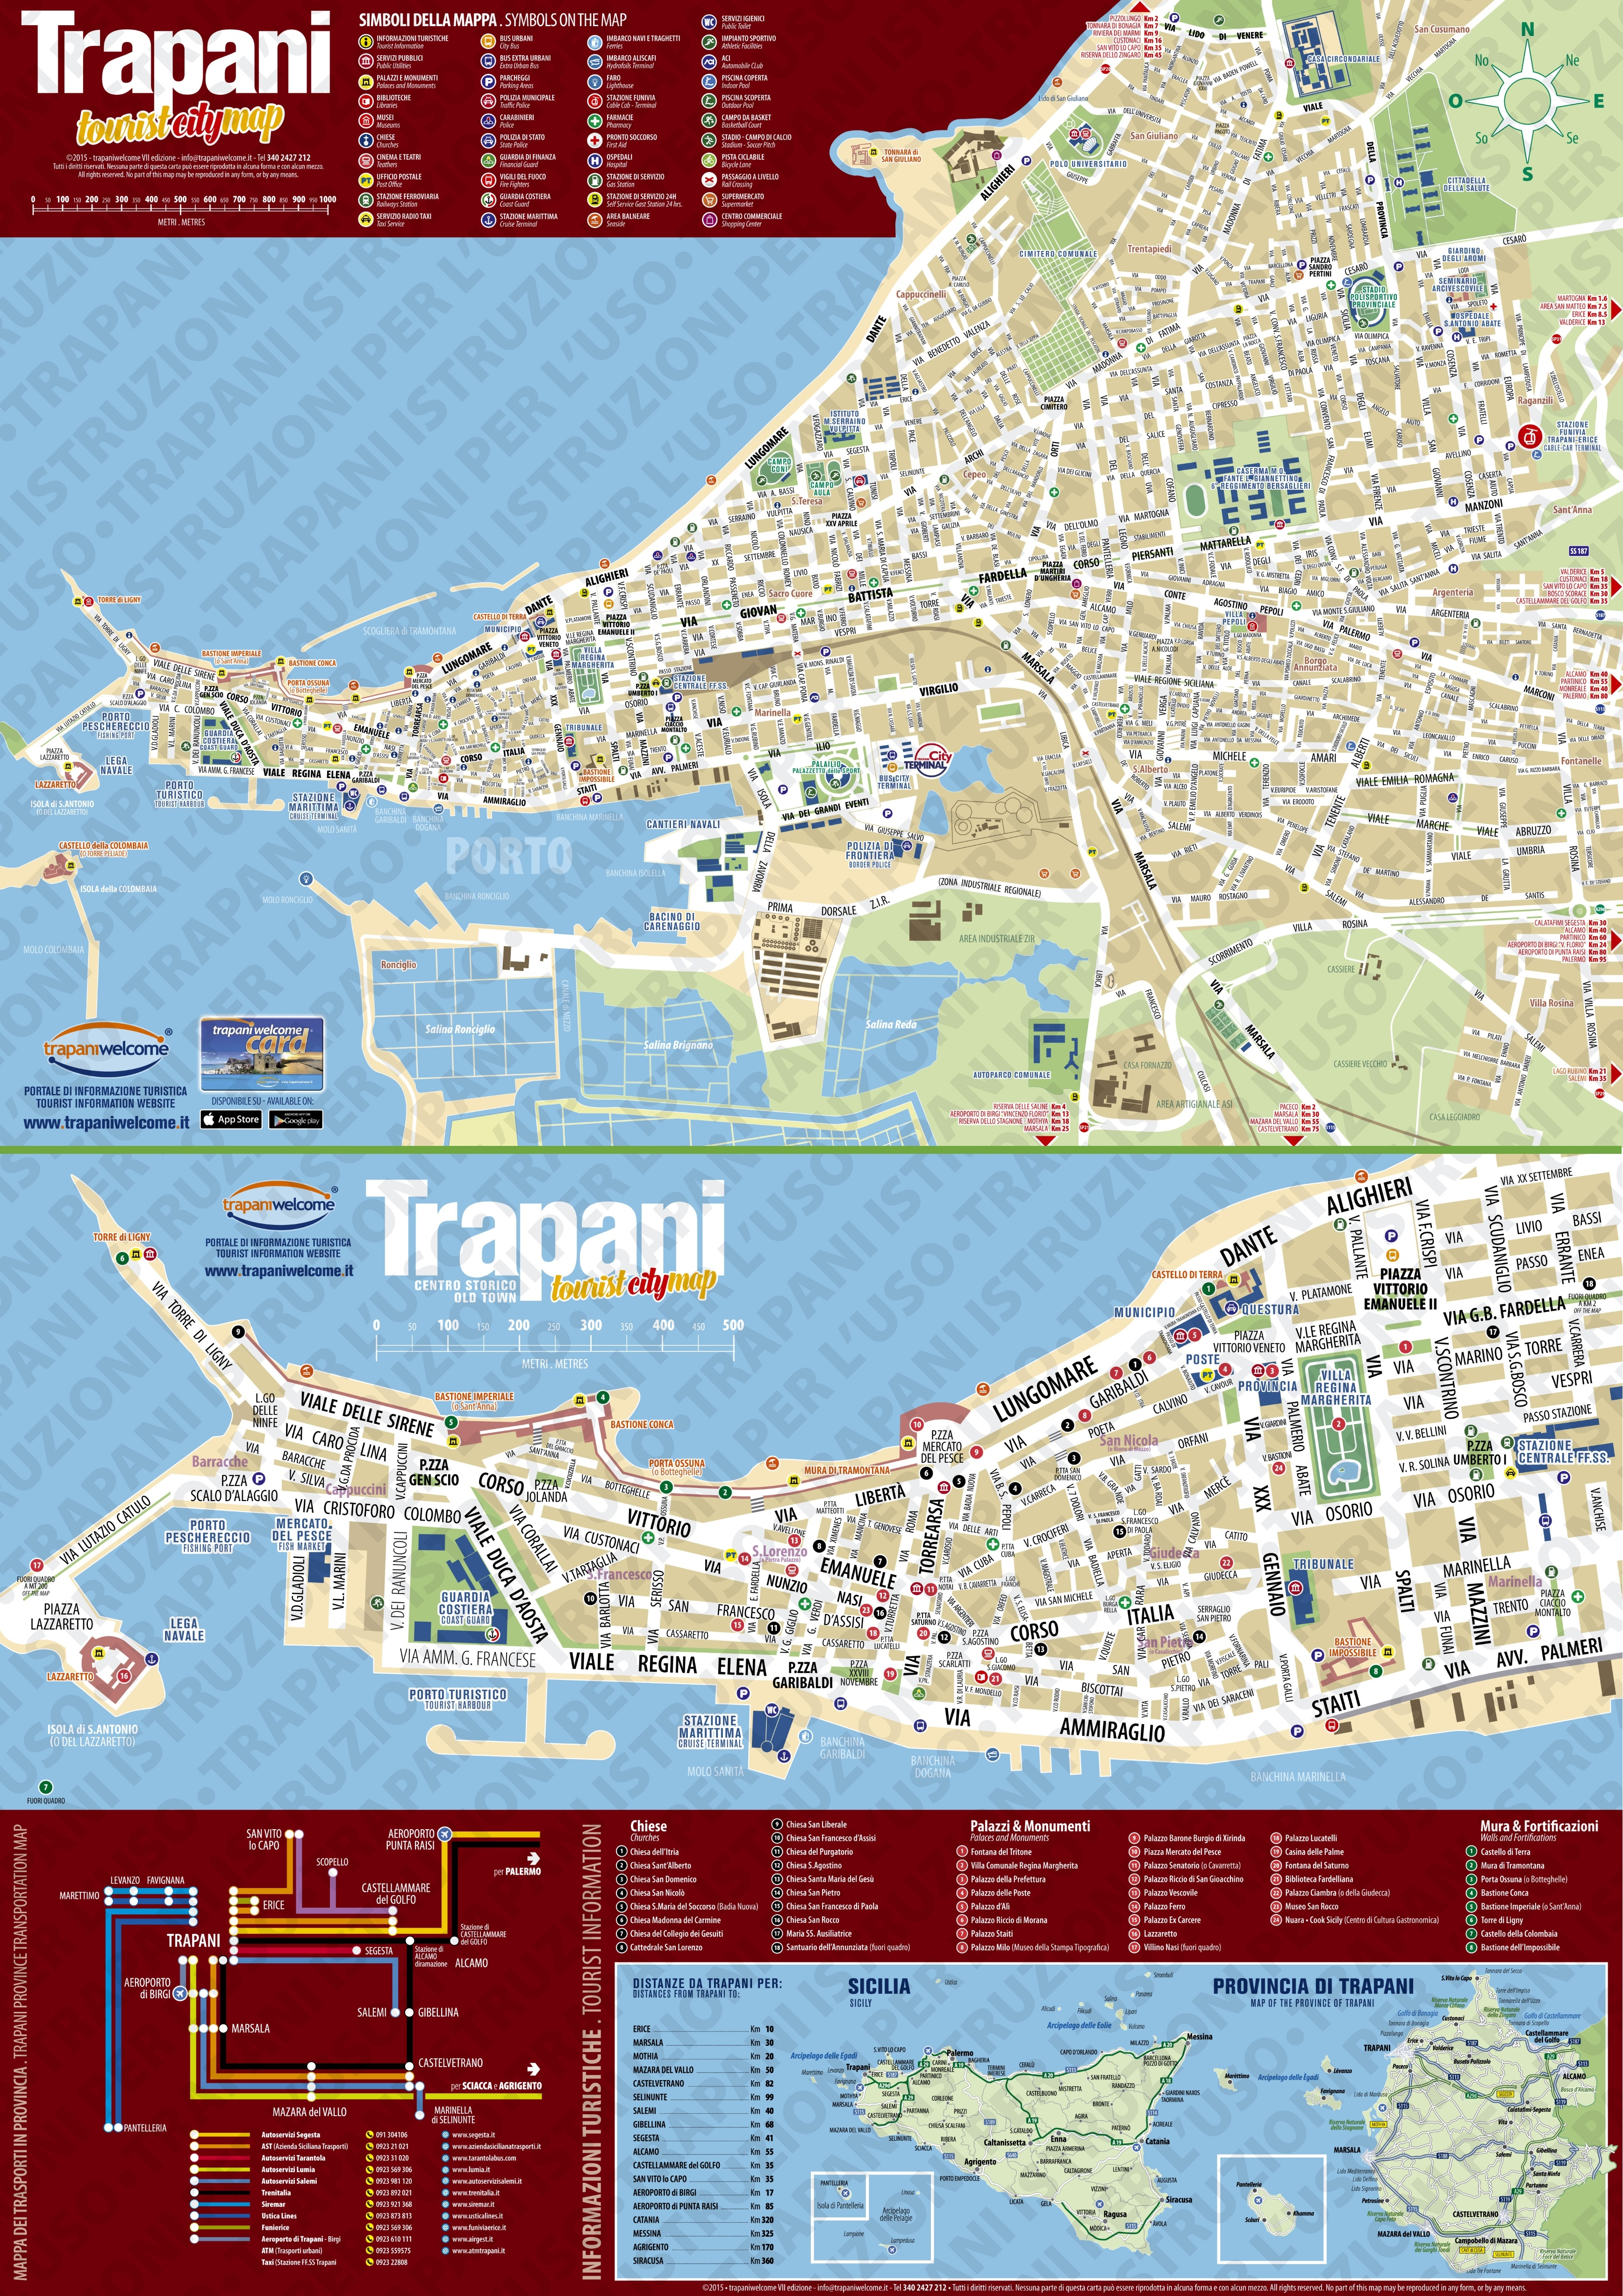 Trapani tourist attractions map